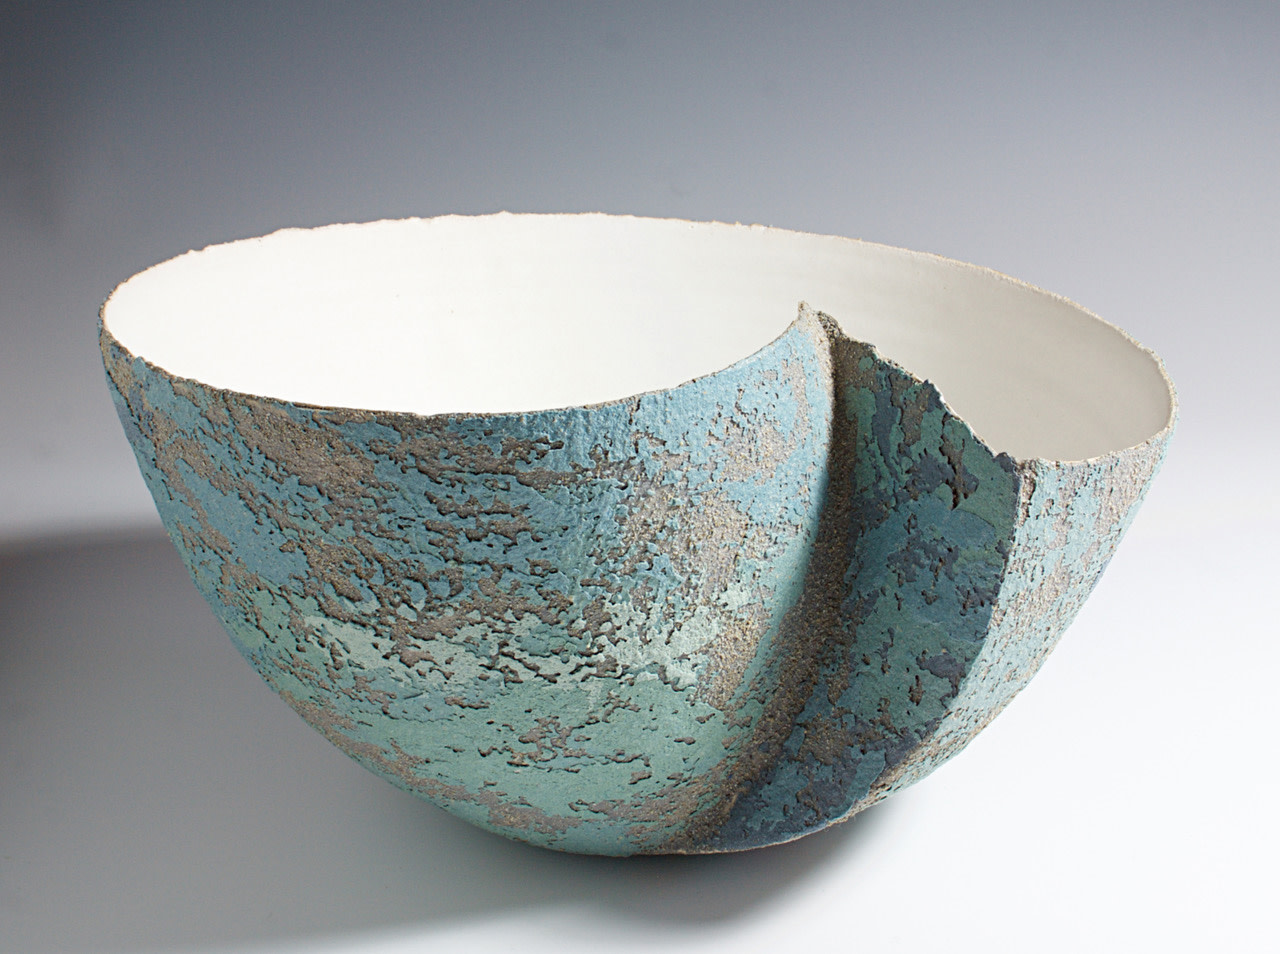 "<span class=""link fancybox-details-link""><a href=""/artists/79-clare-conrad/works/5412-clare-conrad-large-bowl-with-inset-2018/"">View Detail Page</a></span><div class=""artist""><strong>Clare Conrad</strong></div> <div class=""title""><em>Large Bowl with Inset</em>, 2018</div> <div class=""medium"">wheel-thrown stoneware with vitreous slip & satin-matt glaze</div><div class=""copyright_line"">OwnArt: £ 45 x 10 Months, 0% APR</div>"